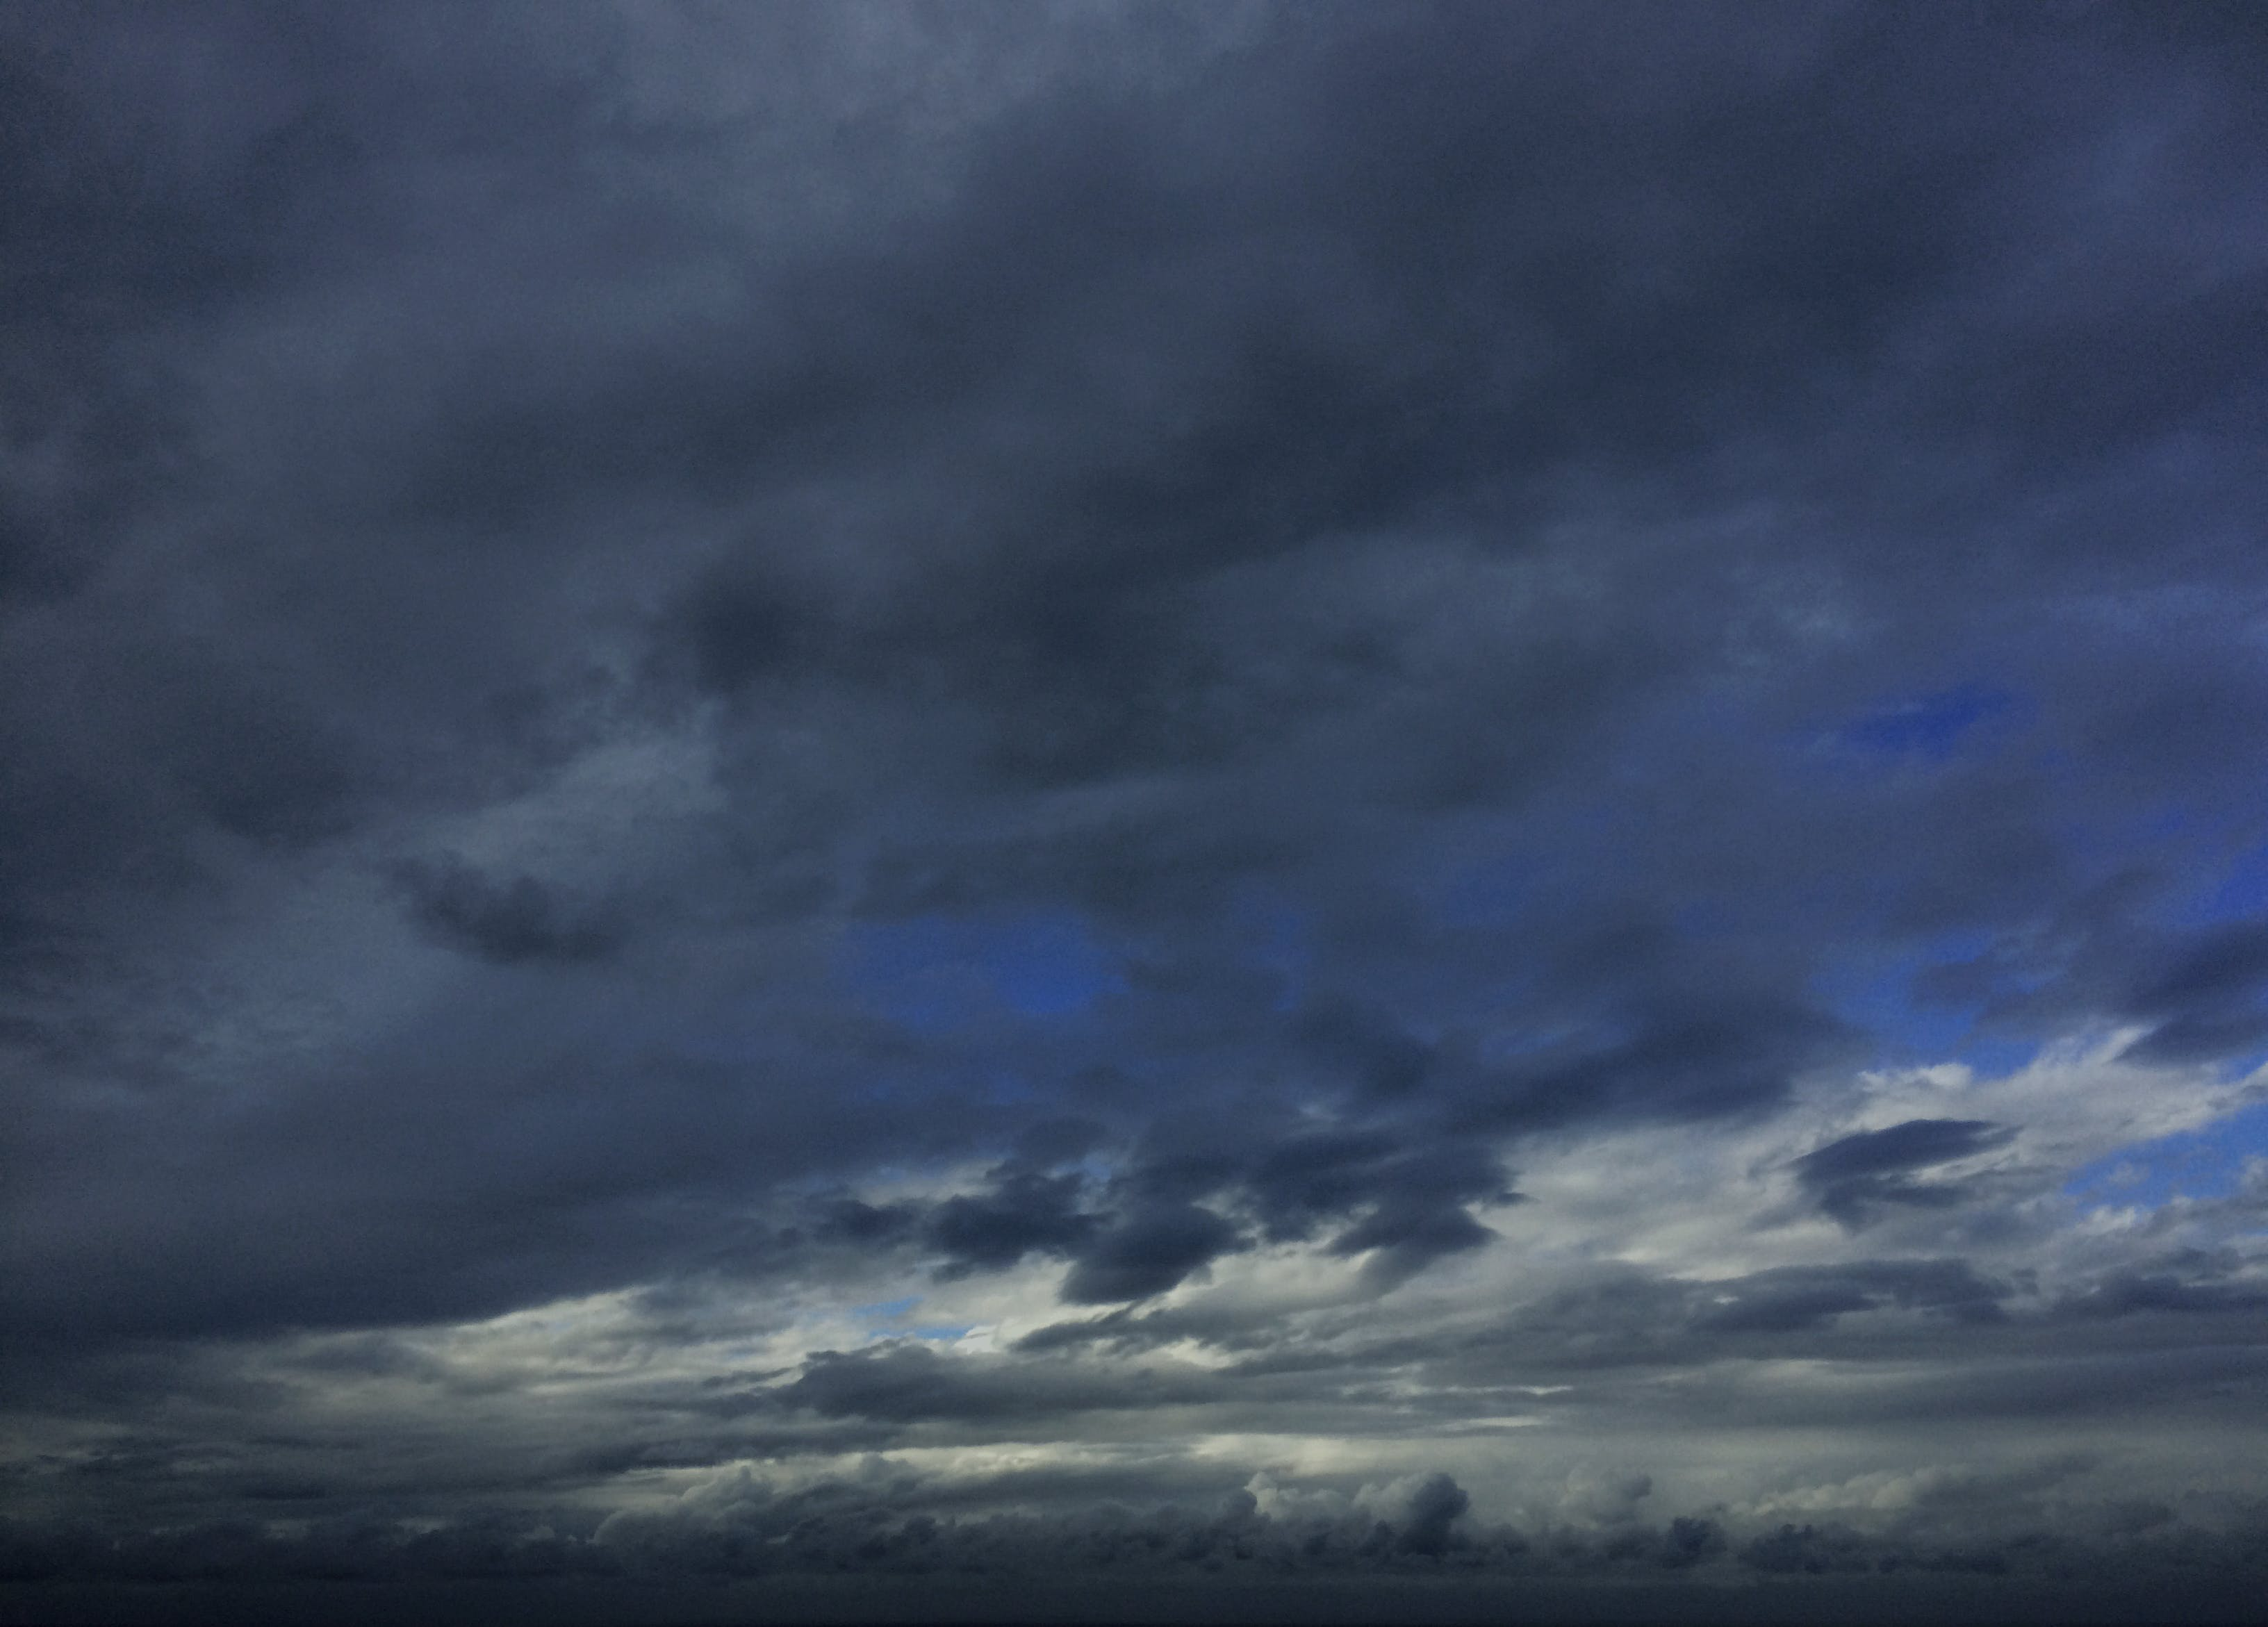 Free stock photo of by the sea, cloud sky, cloudy sky, dark clouds